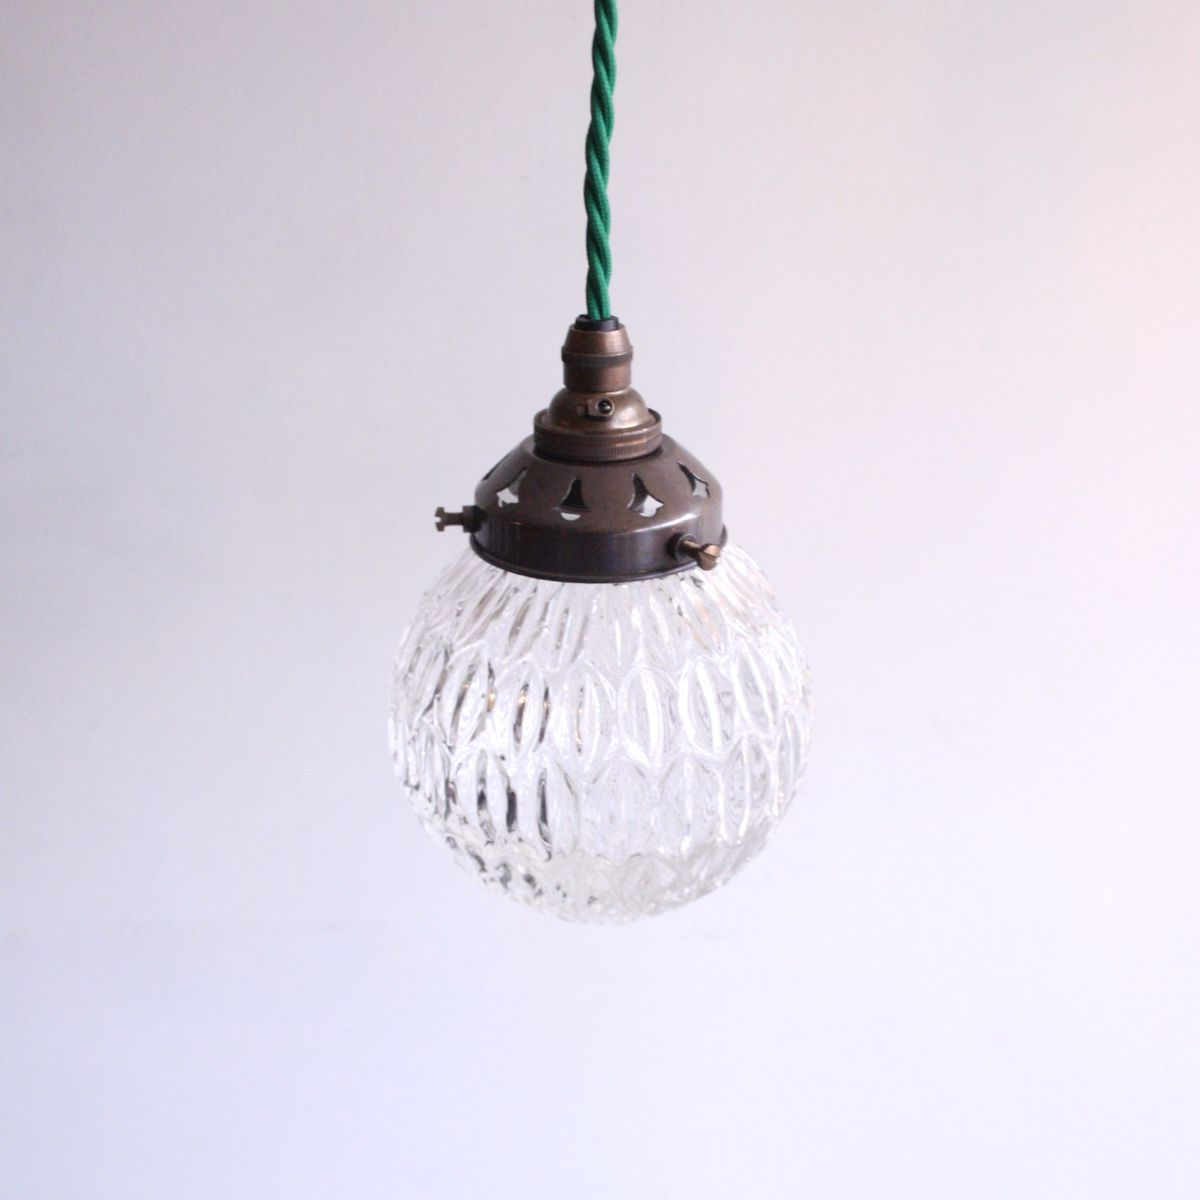 Vintage Textured Glass Pendant Lamp For Sale At Pamono